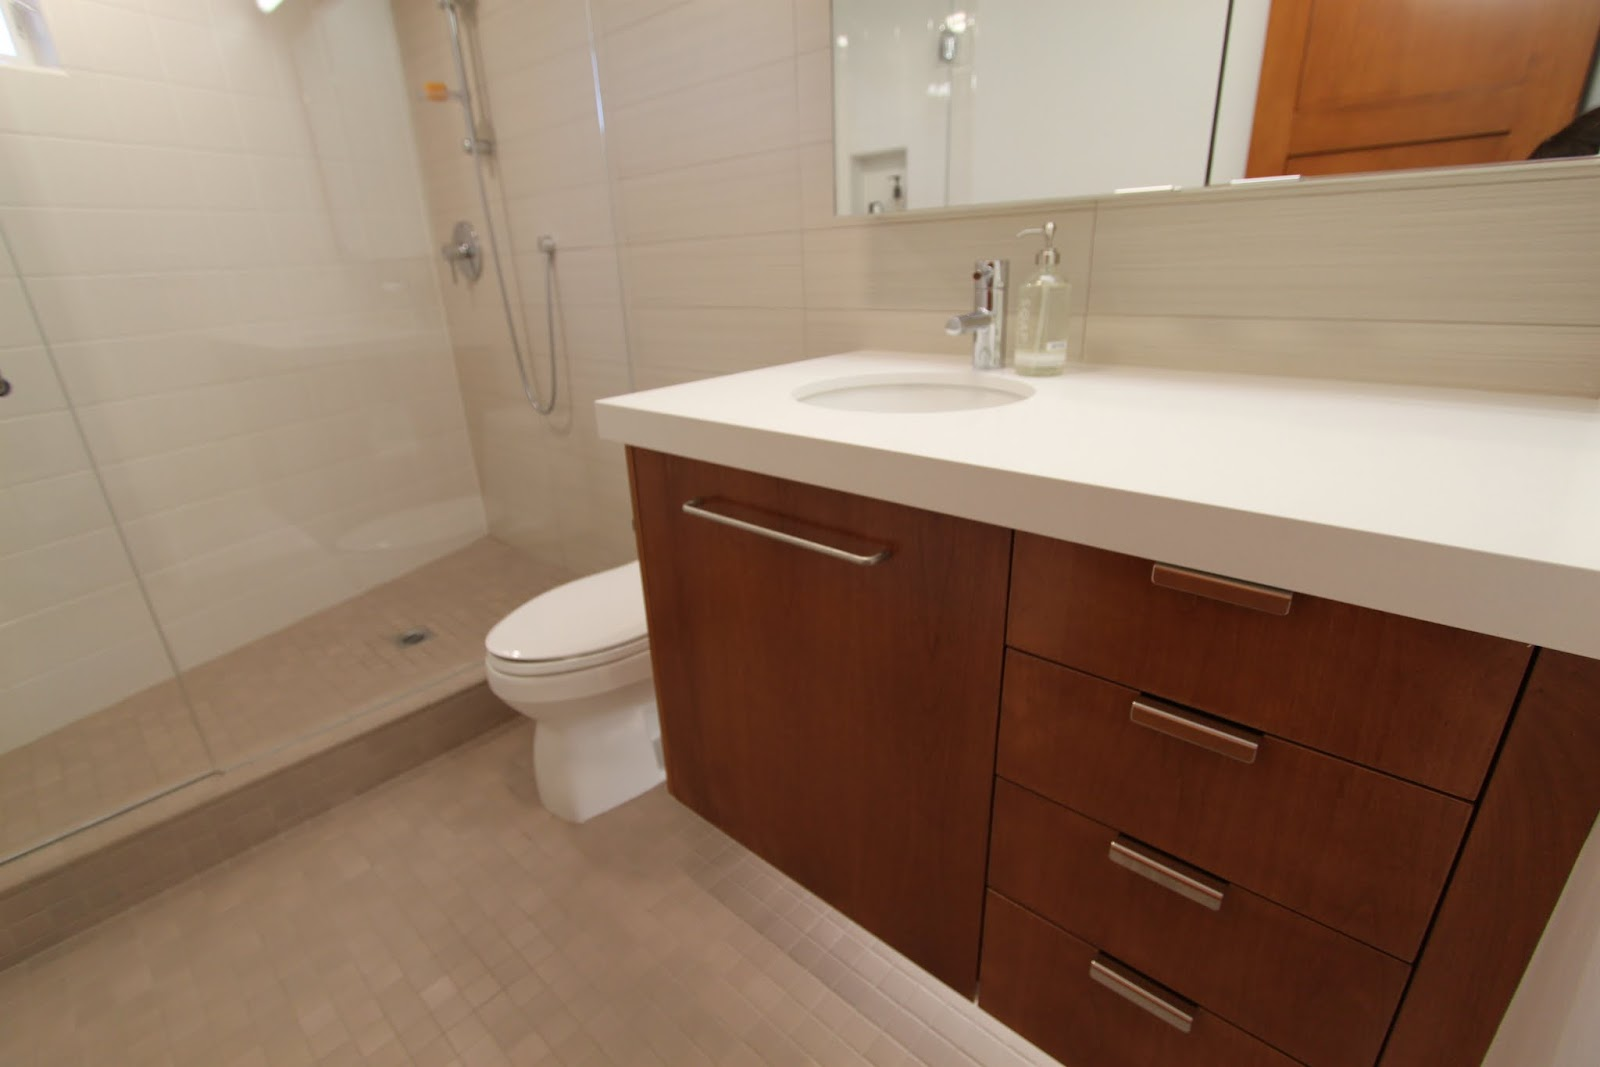 Top Five Favorite Features Mid Century Bathroom Remodel Mid Century Modern Remodel